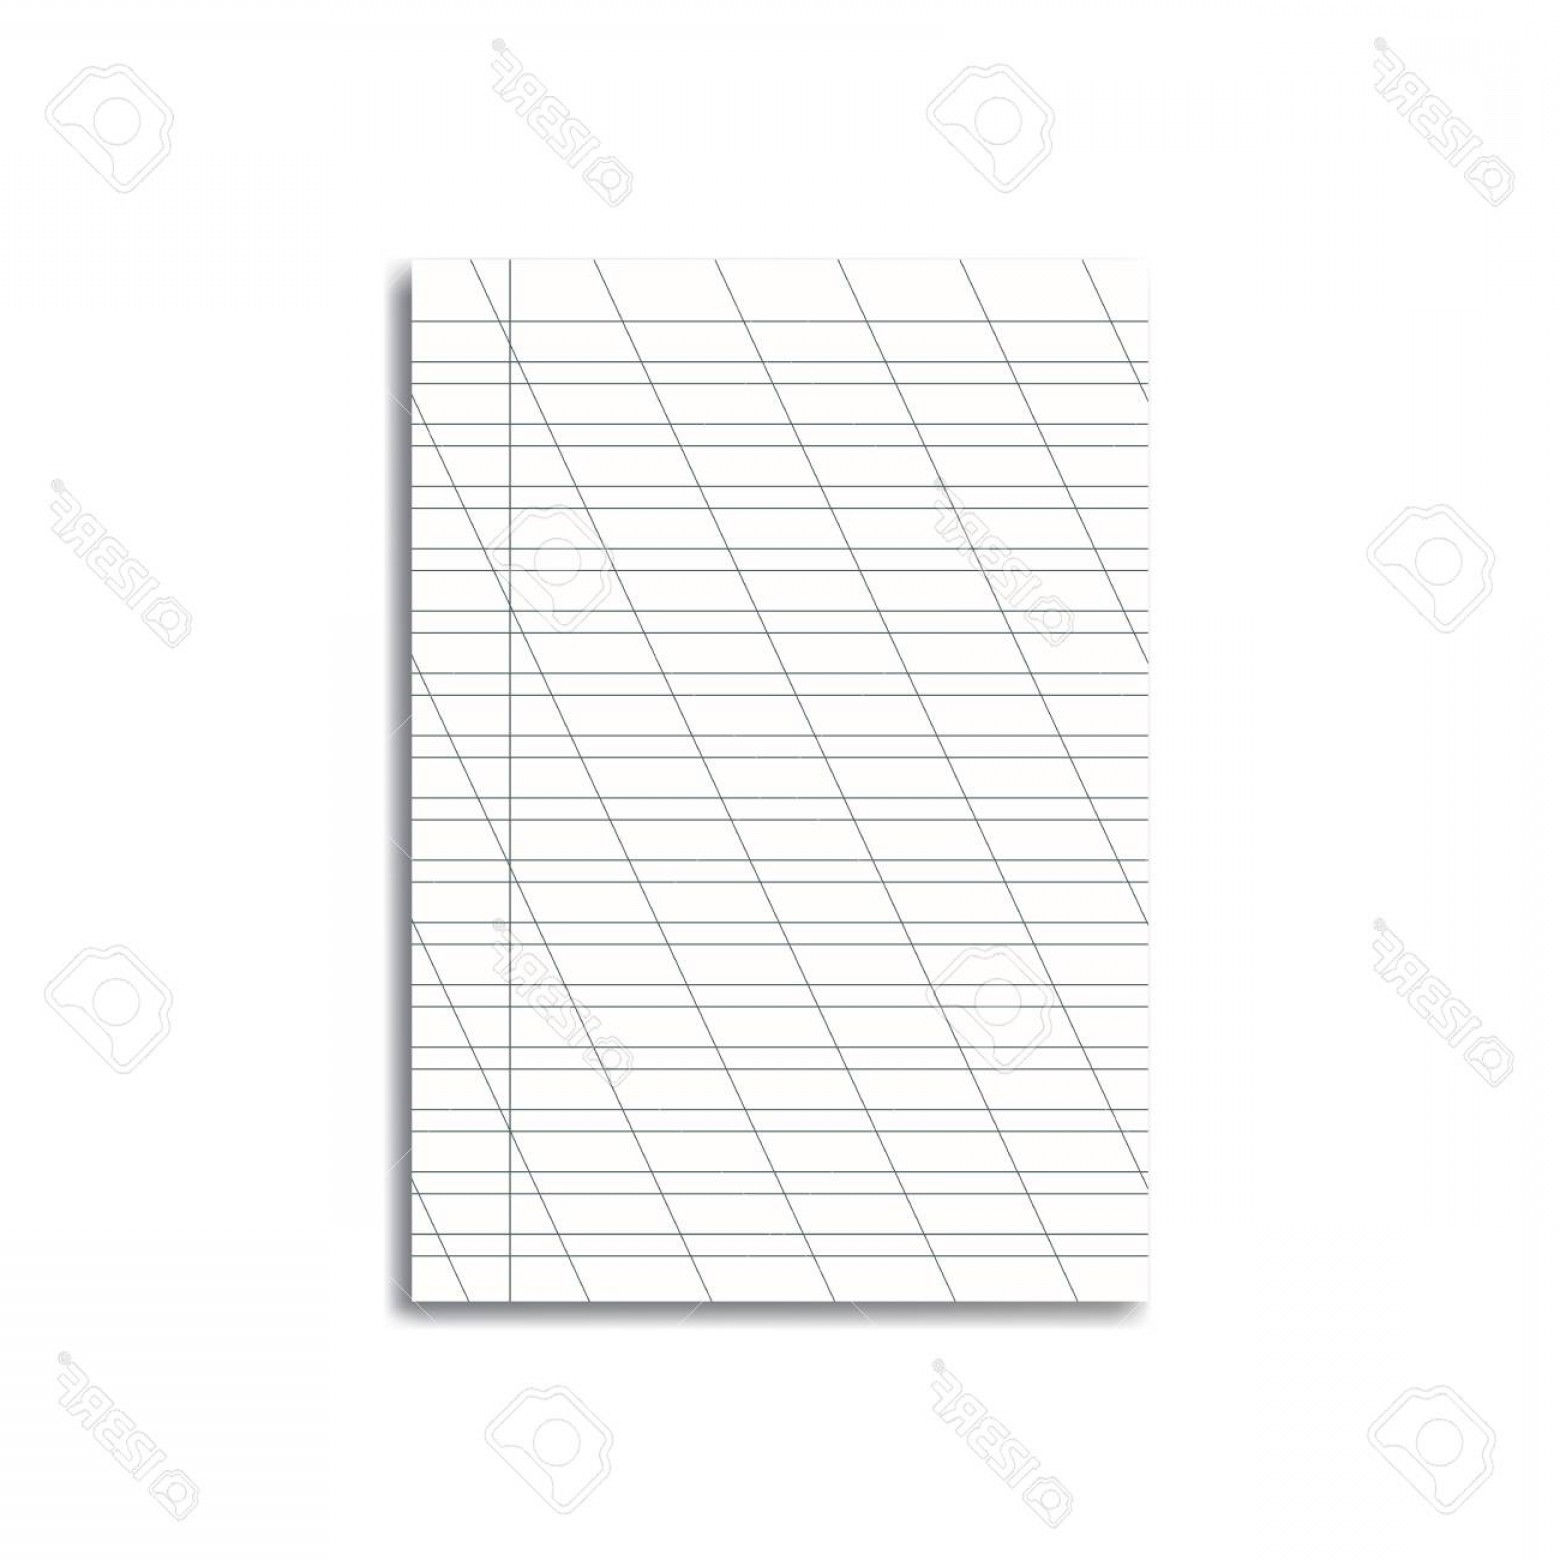 Cursive Lines Vector: Photostock Vector Vector Opened Realistic School Cursive Writing Worksheet With Red Margins And Diagonal Lines Handwri